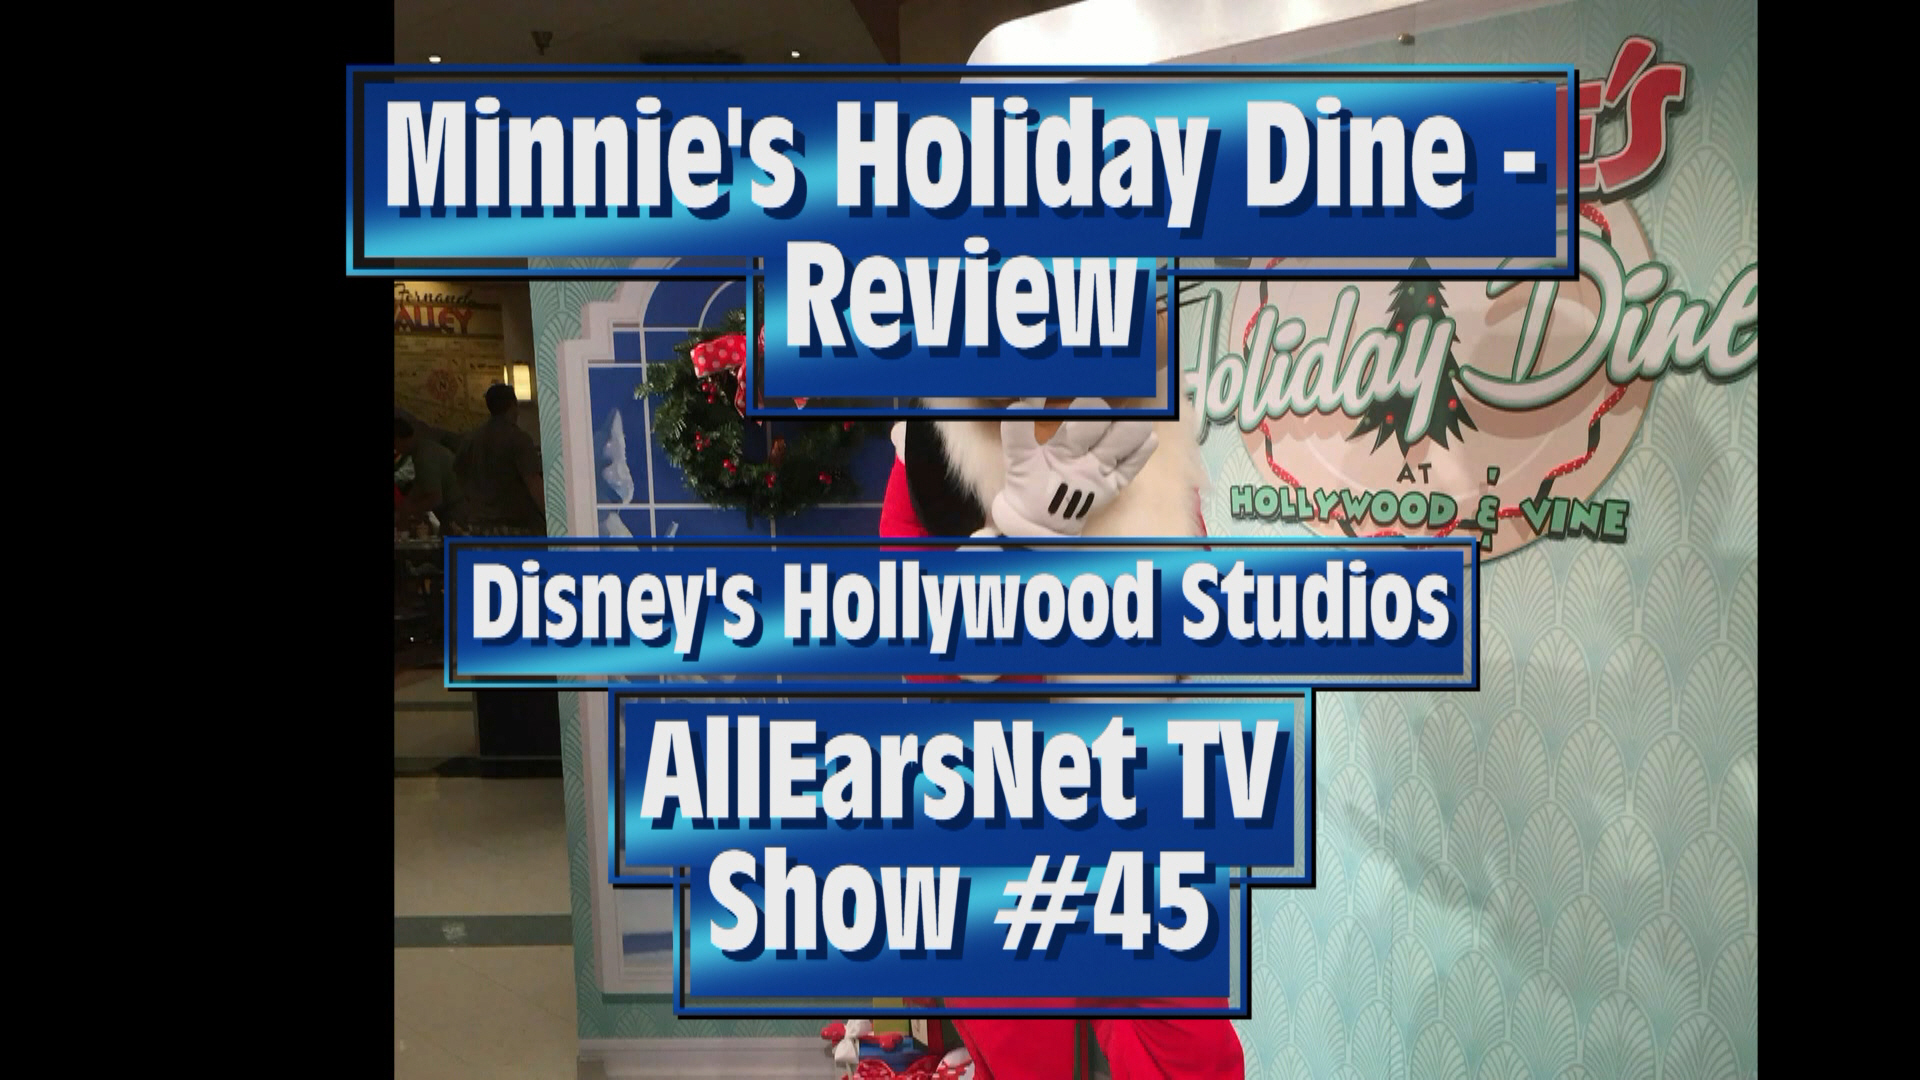 Minnie's Holiday Dine Video Review!